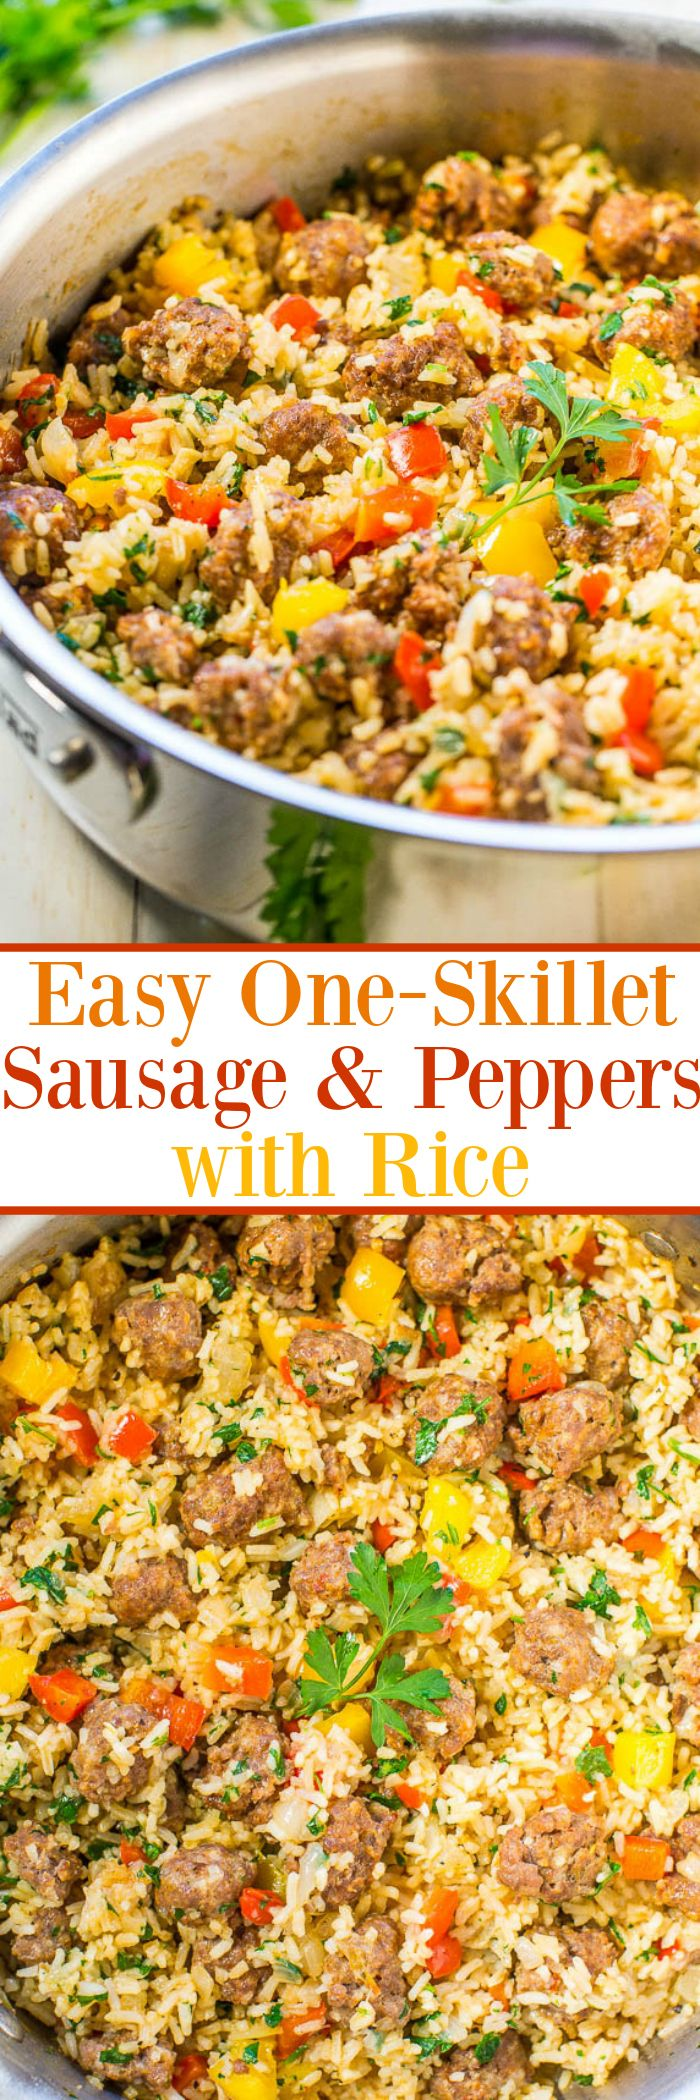 Easy One-Skillet Sausage and Peppers with Rice - Juicy sausage, crisp peppers, onions, and rice all cook together in one skillet! Makes cleanup a breeze! Packed with flavor and ready in 30 minutes!!   www.lab333.com  www.facebook.com/pages/LAB-STYLE/585086788169863  http://www.lab333style.com  https://instagram.com/lab_333  http://lablikes.tumblr.com  www.pinterest.com/labstyle